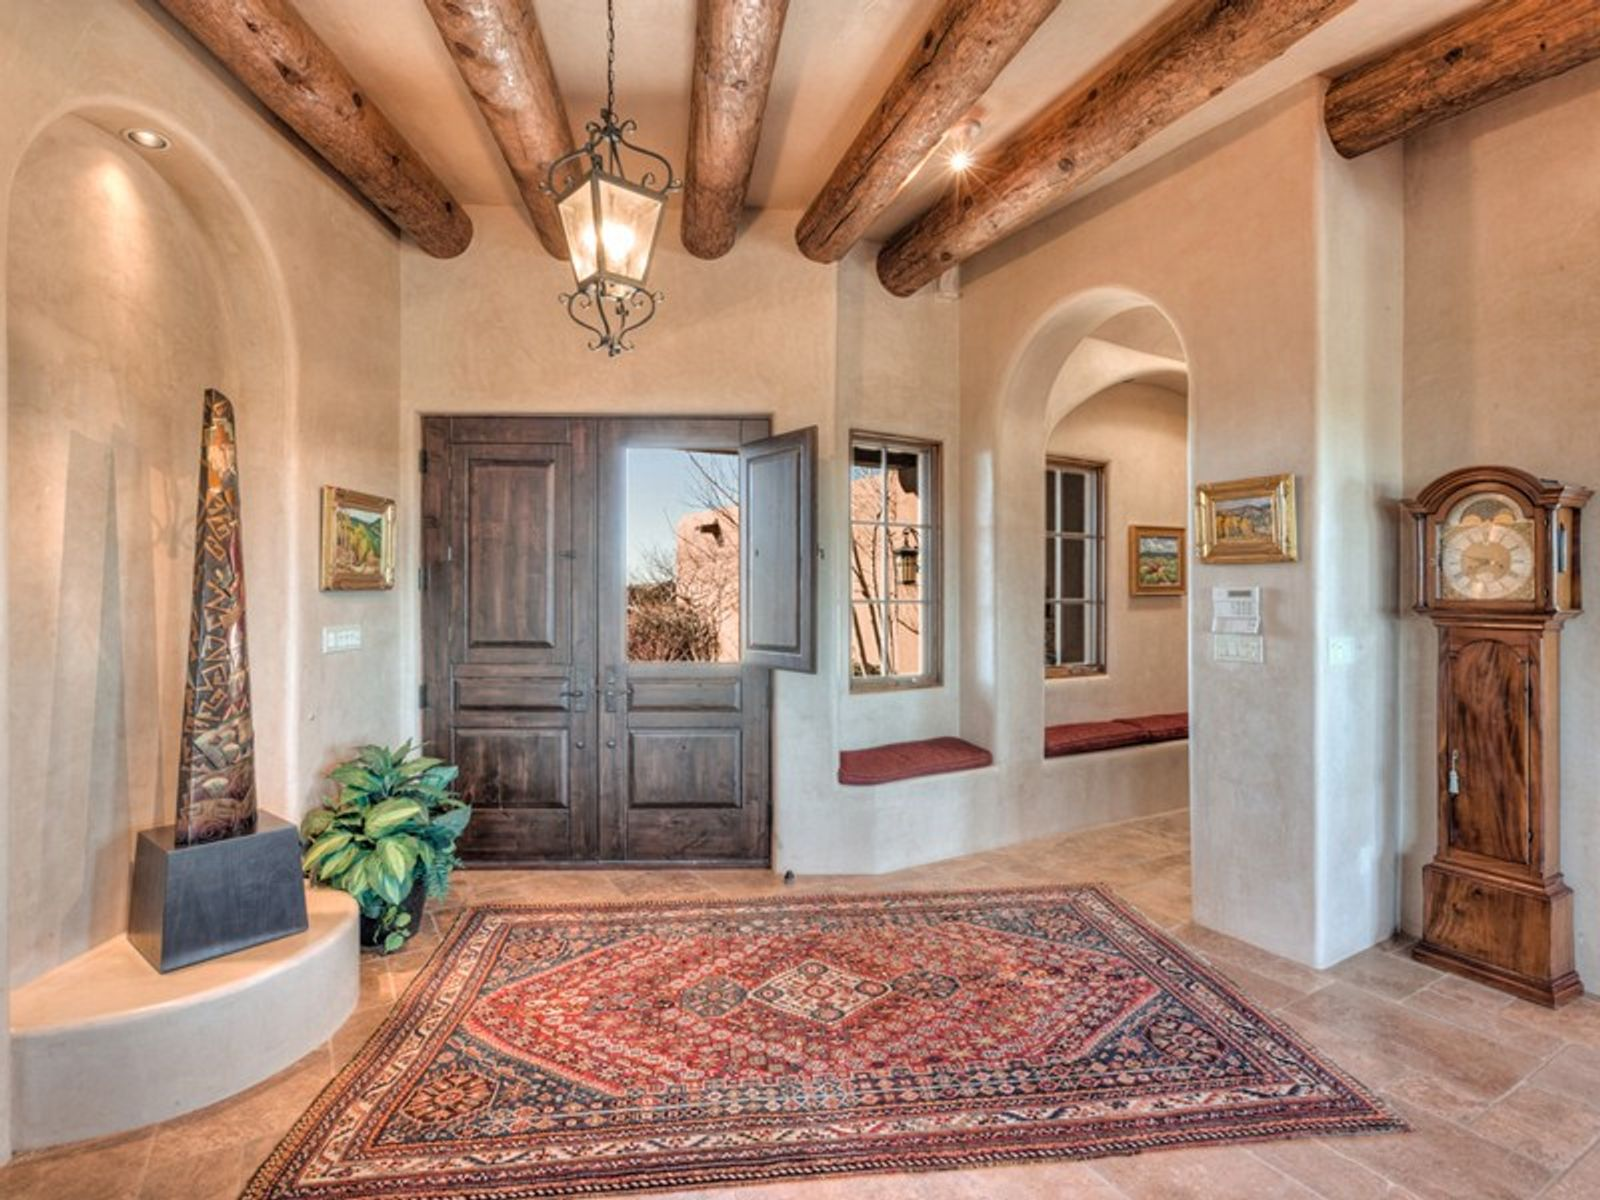 Entry-tall ceiling, graceful arches, art nichos